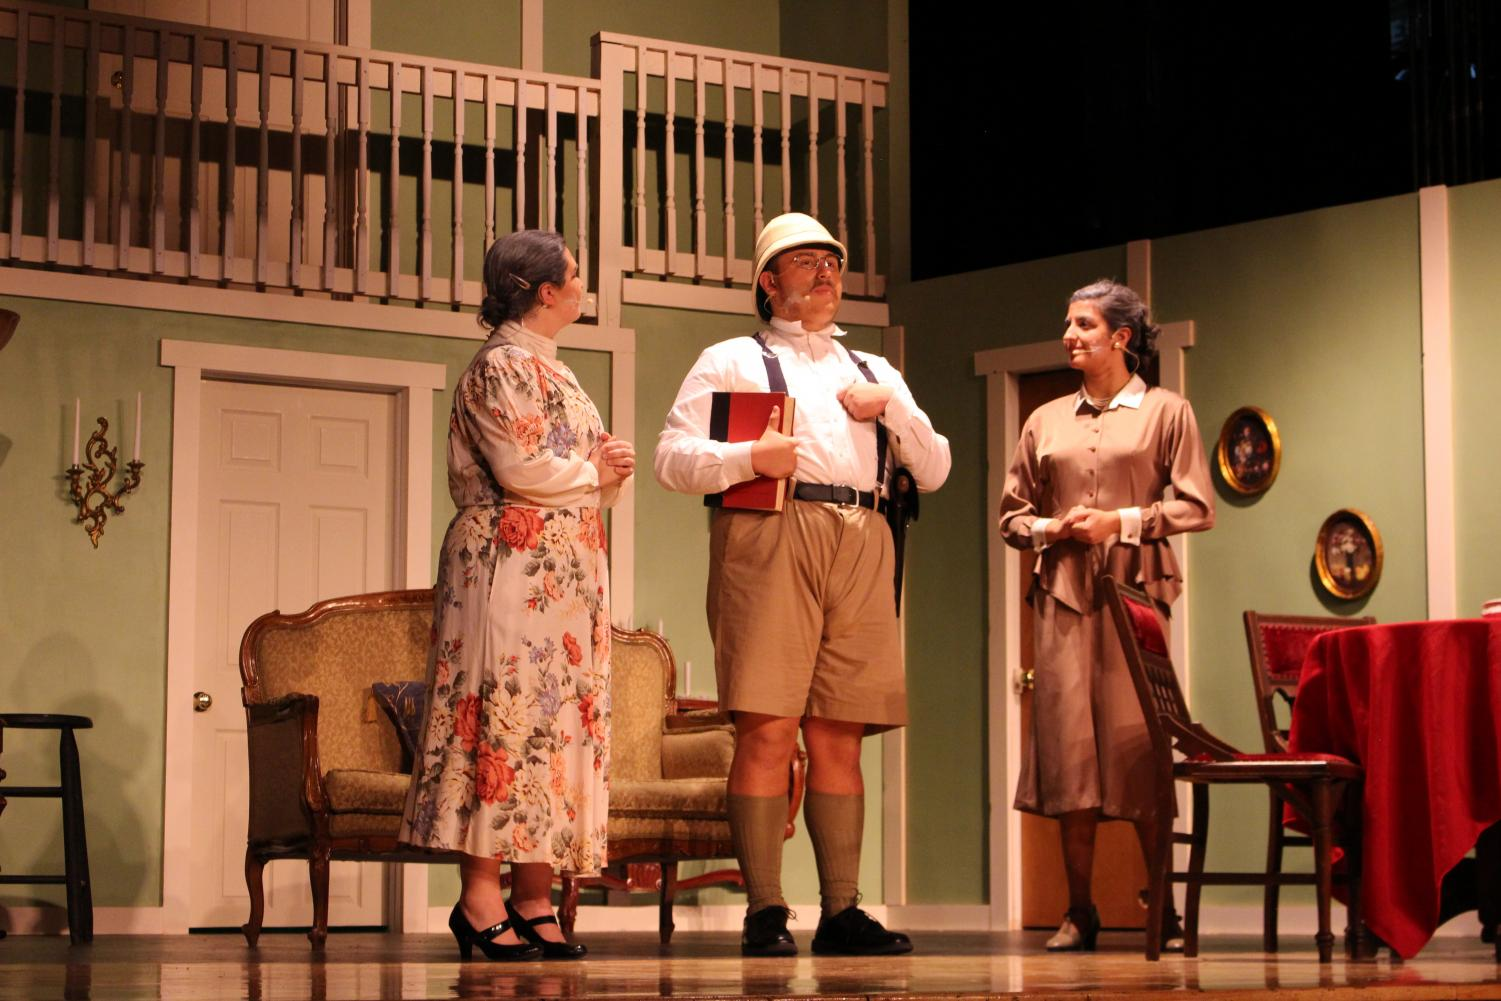 Sophia Nappa (left) as Abby Brewster, Noah Santiago (middle) as Teddy Roosevelt, and Veronica Angiuli (right) as Martha Brewster.